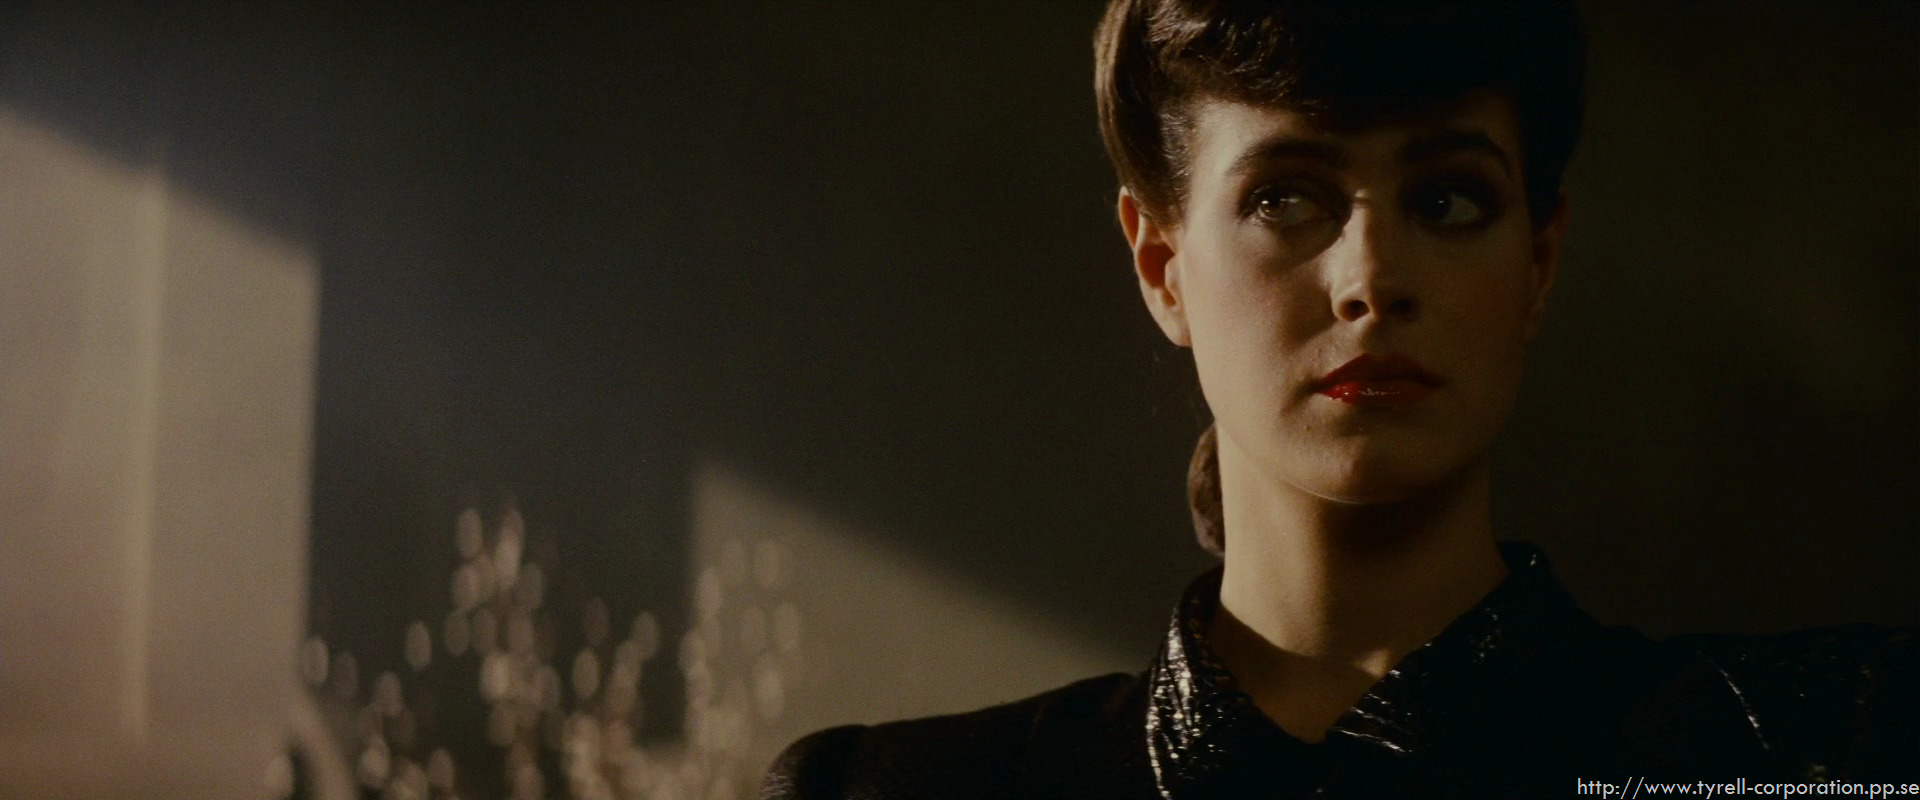 blade runner sean young HD Wallpaper